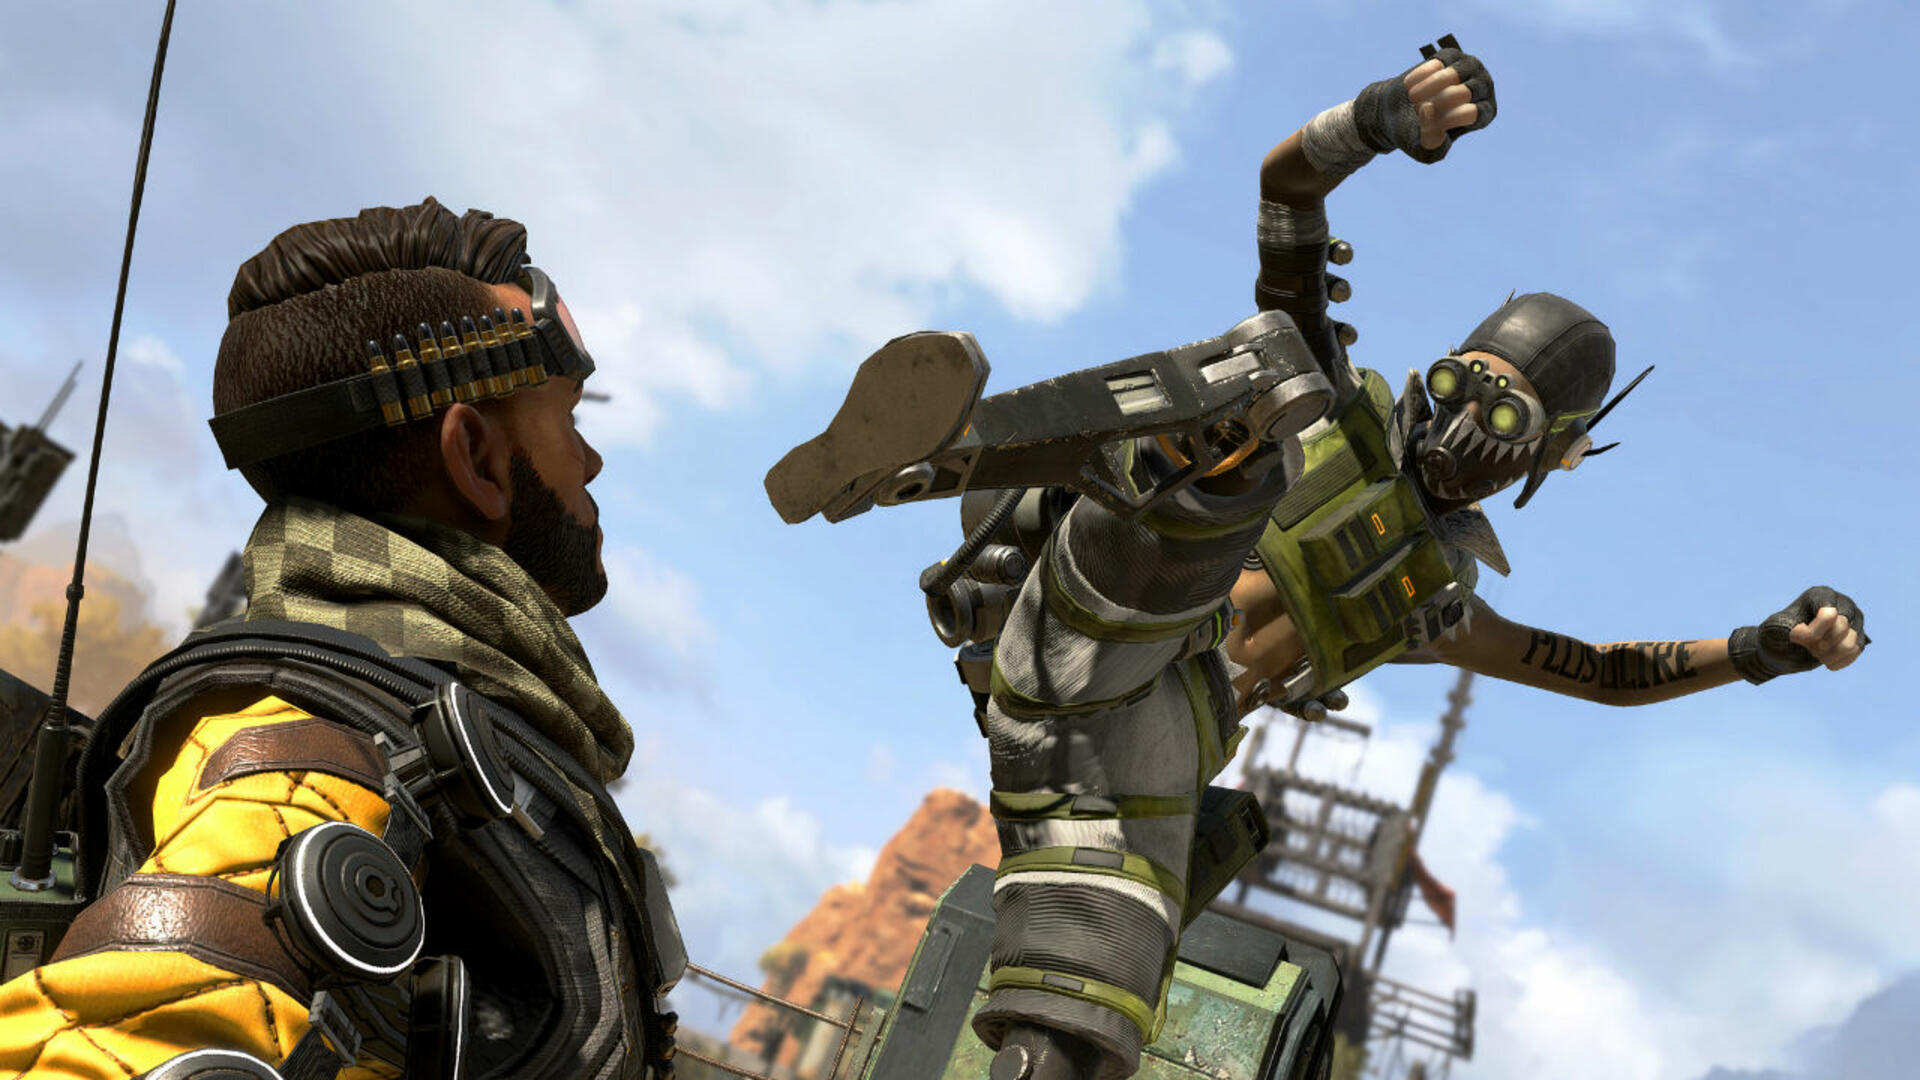 Apex Legends Players Seem Torn Over Ranked Mode's Encouragement of Camping